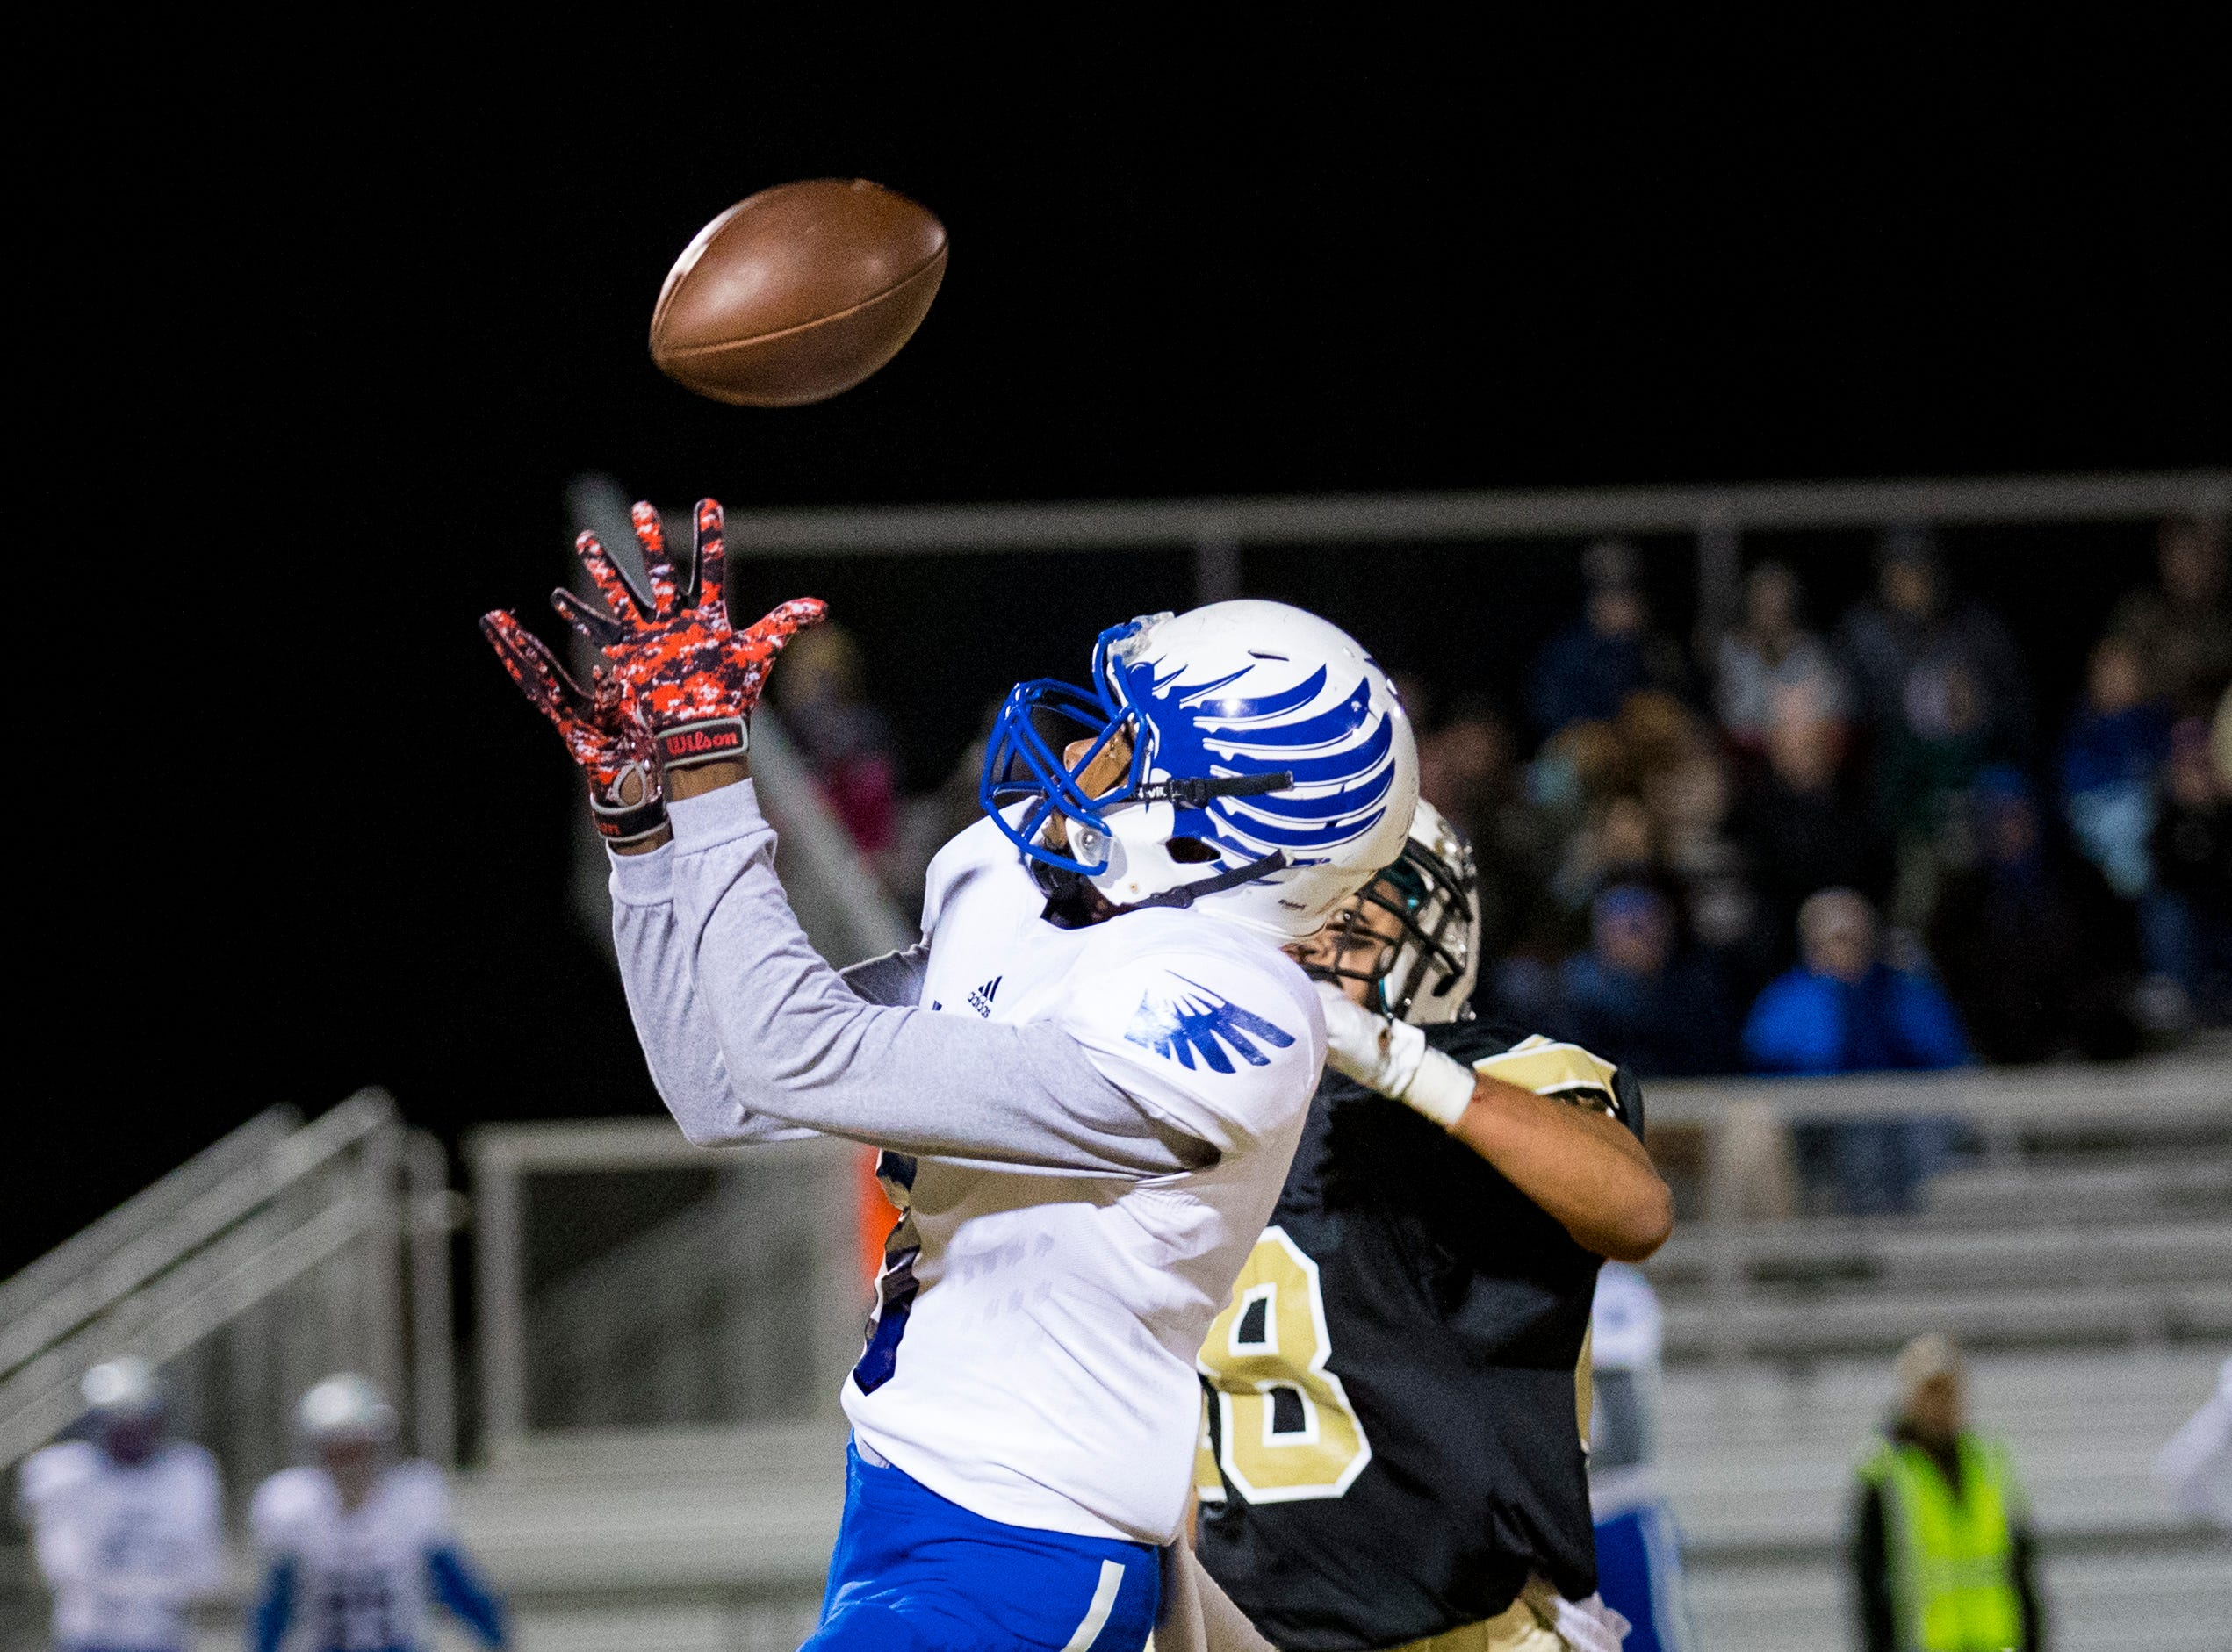 Chester County's Tyrese Williams (9) catches a long pass during Springfield's game against Chester County at Springfield High School in Springfield on Friday, Nov. 2, 2018.